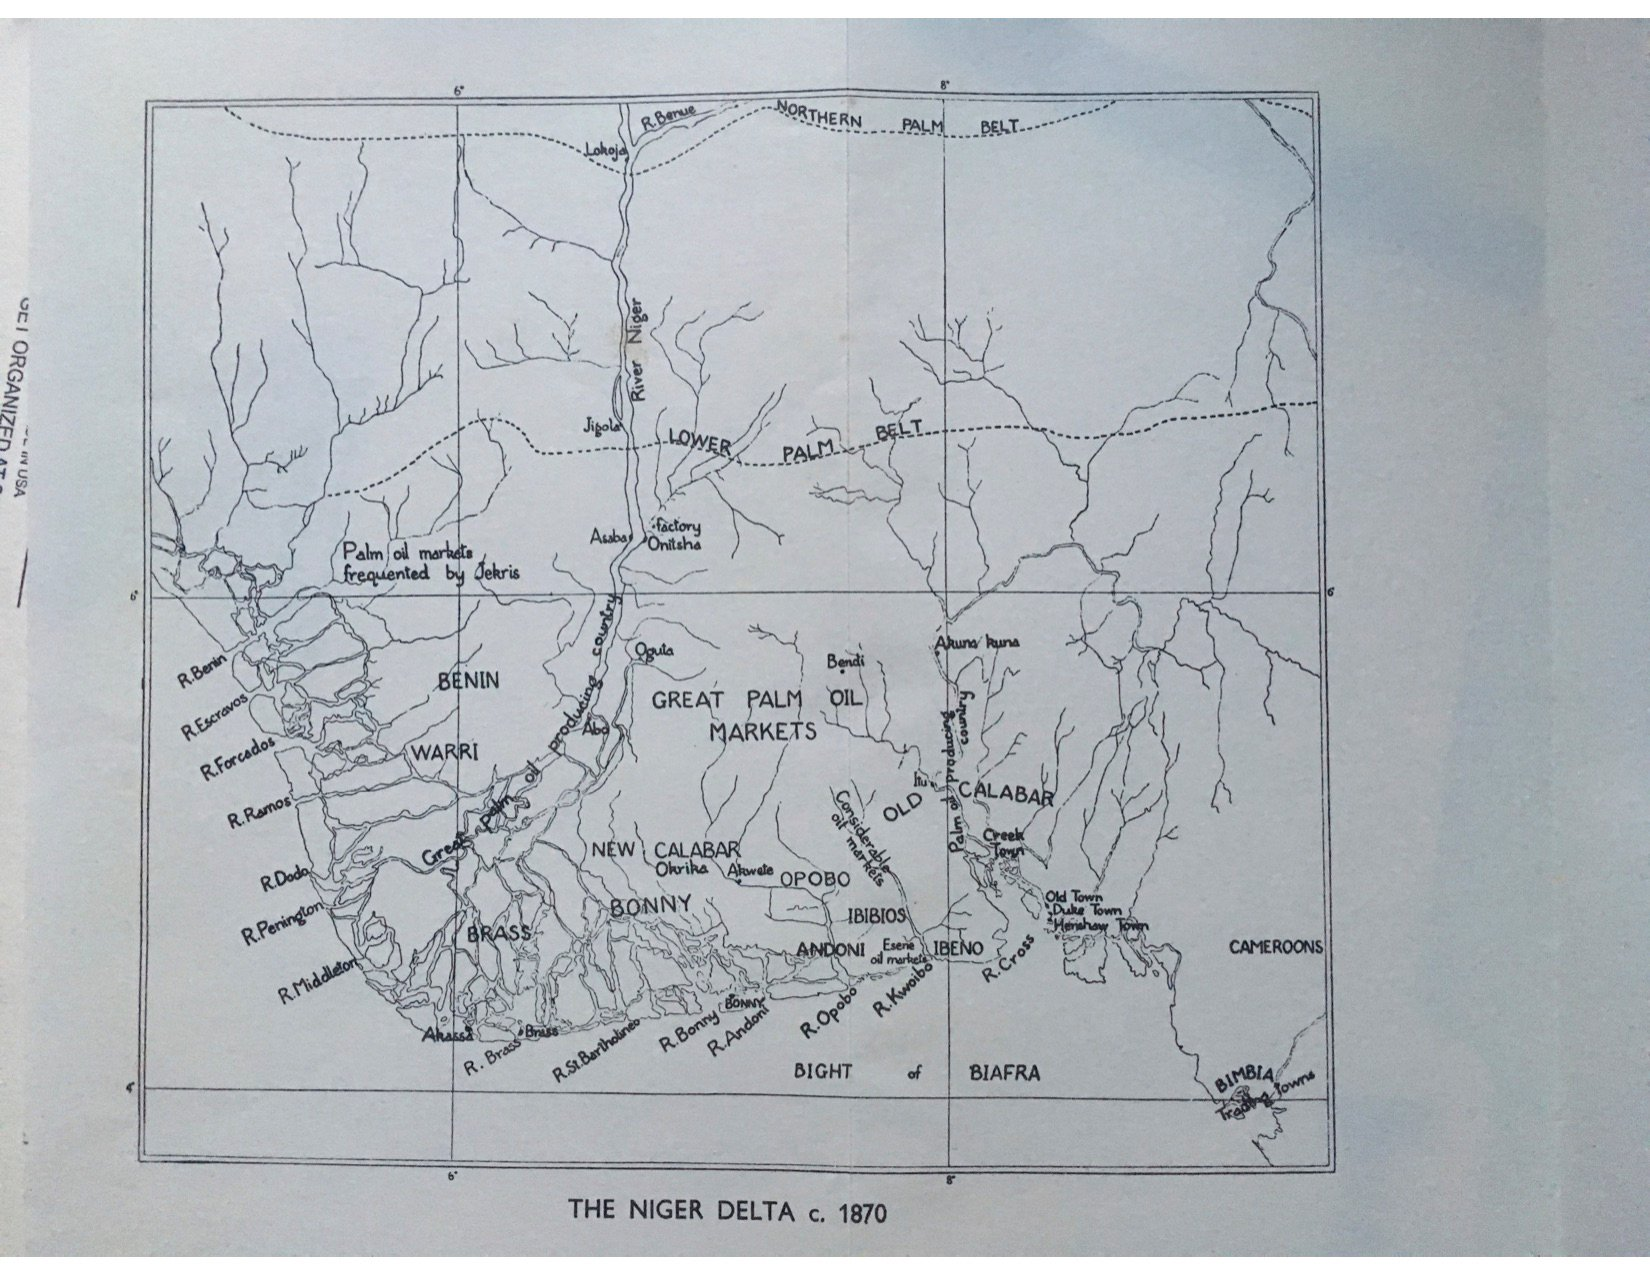 A map of the Niger Delta circa 1870, showing the great palm oil markets.